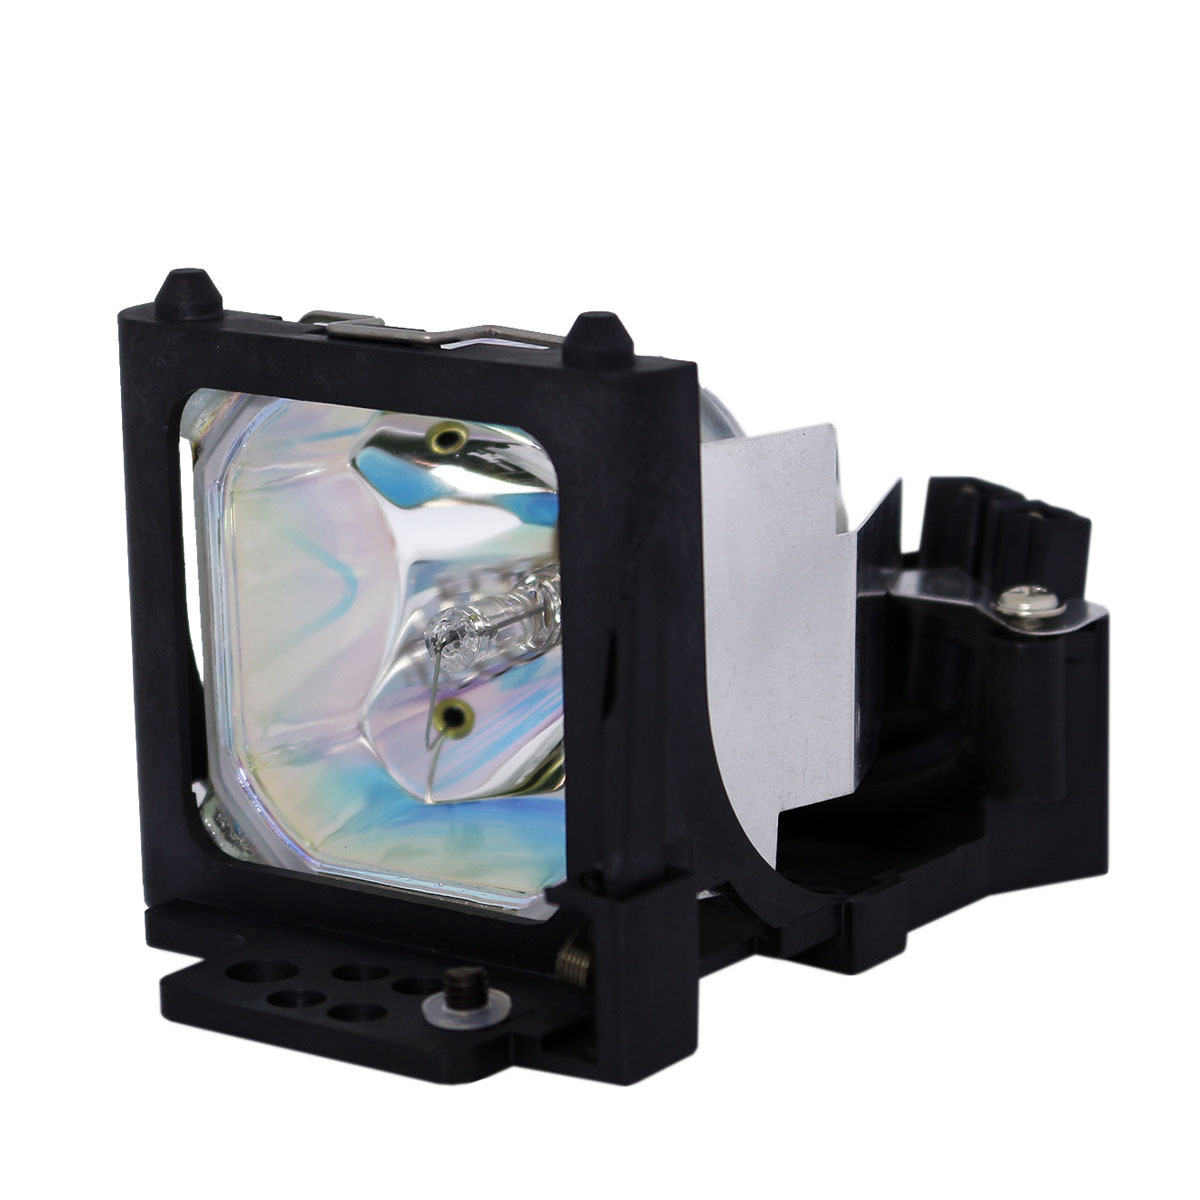 3M MP7640i Projector Lamp  New UHB Bulb at a Low Price - Projectorquest